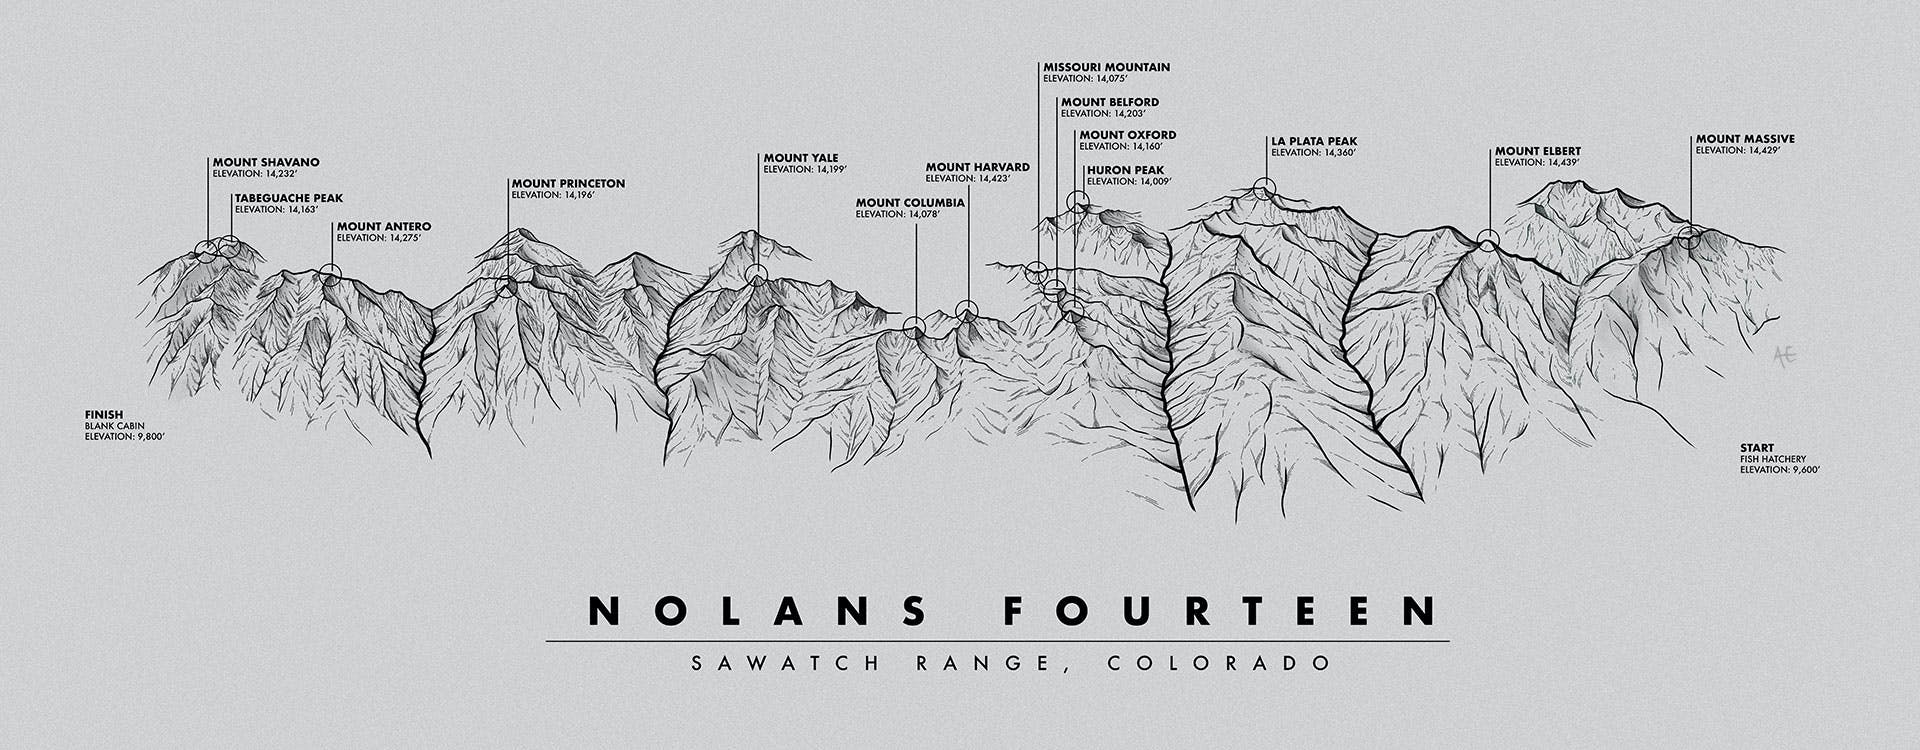 Sawatch Range, Colorado Map